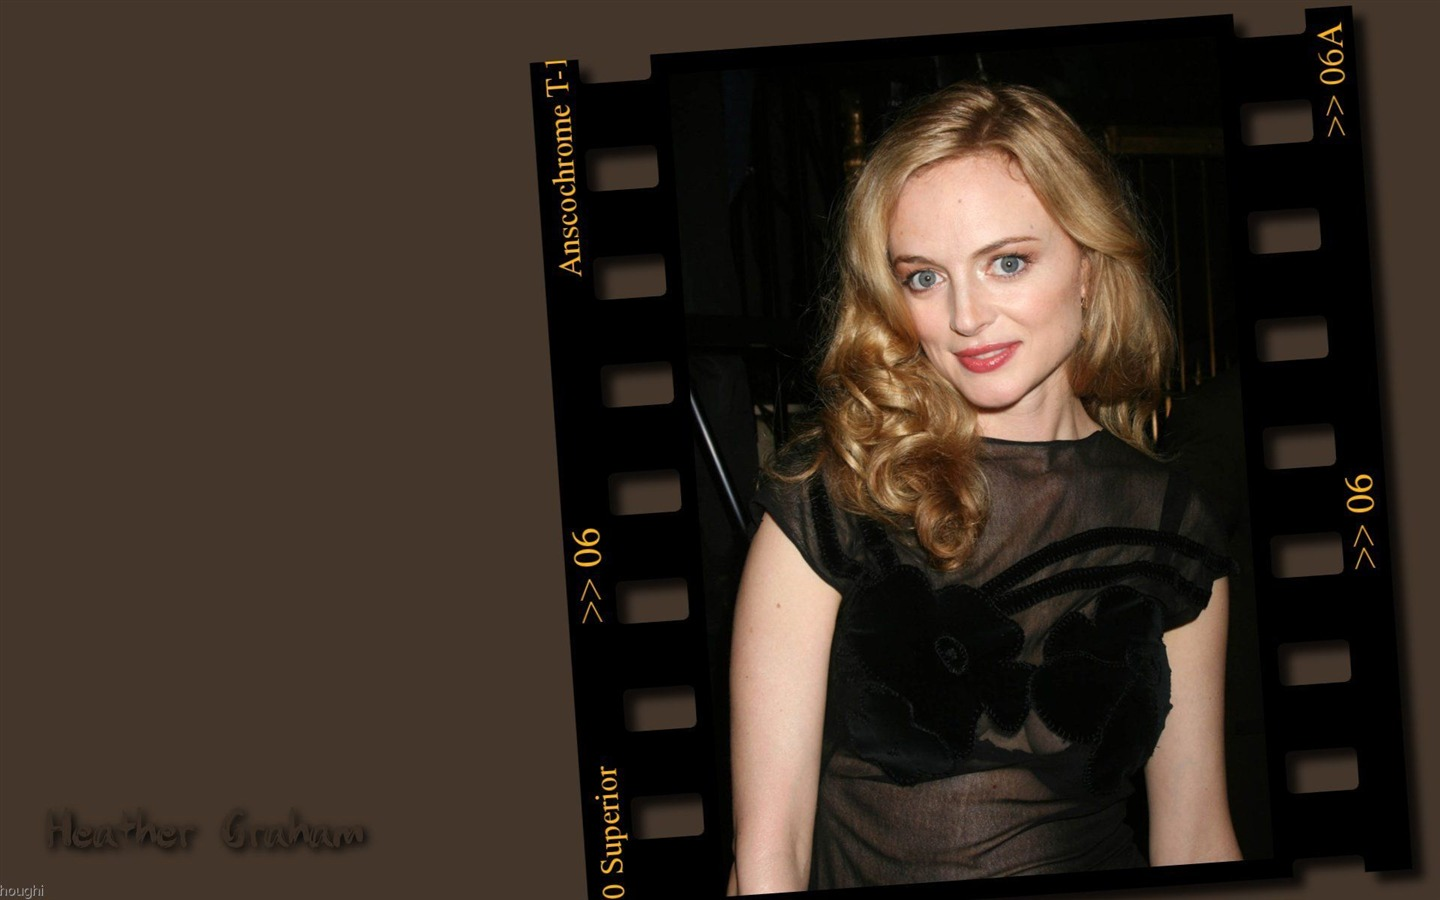 Heather Graham #006 - 1440x900 Wallpapers Pictures Photos Images